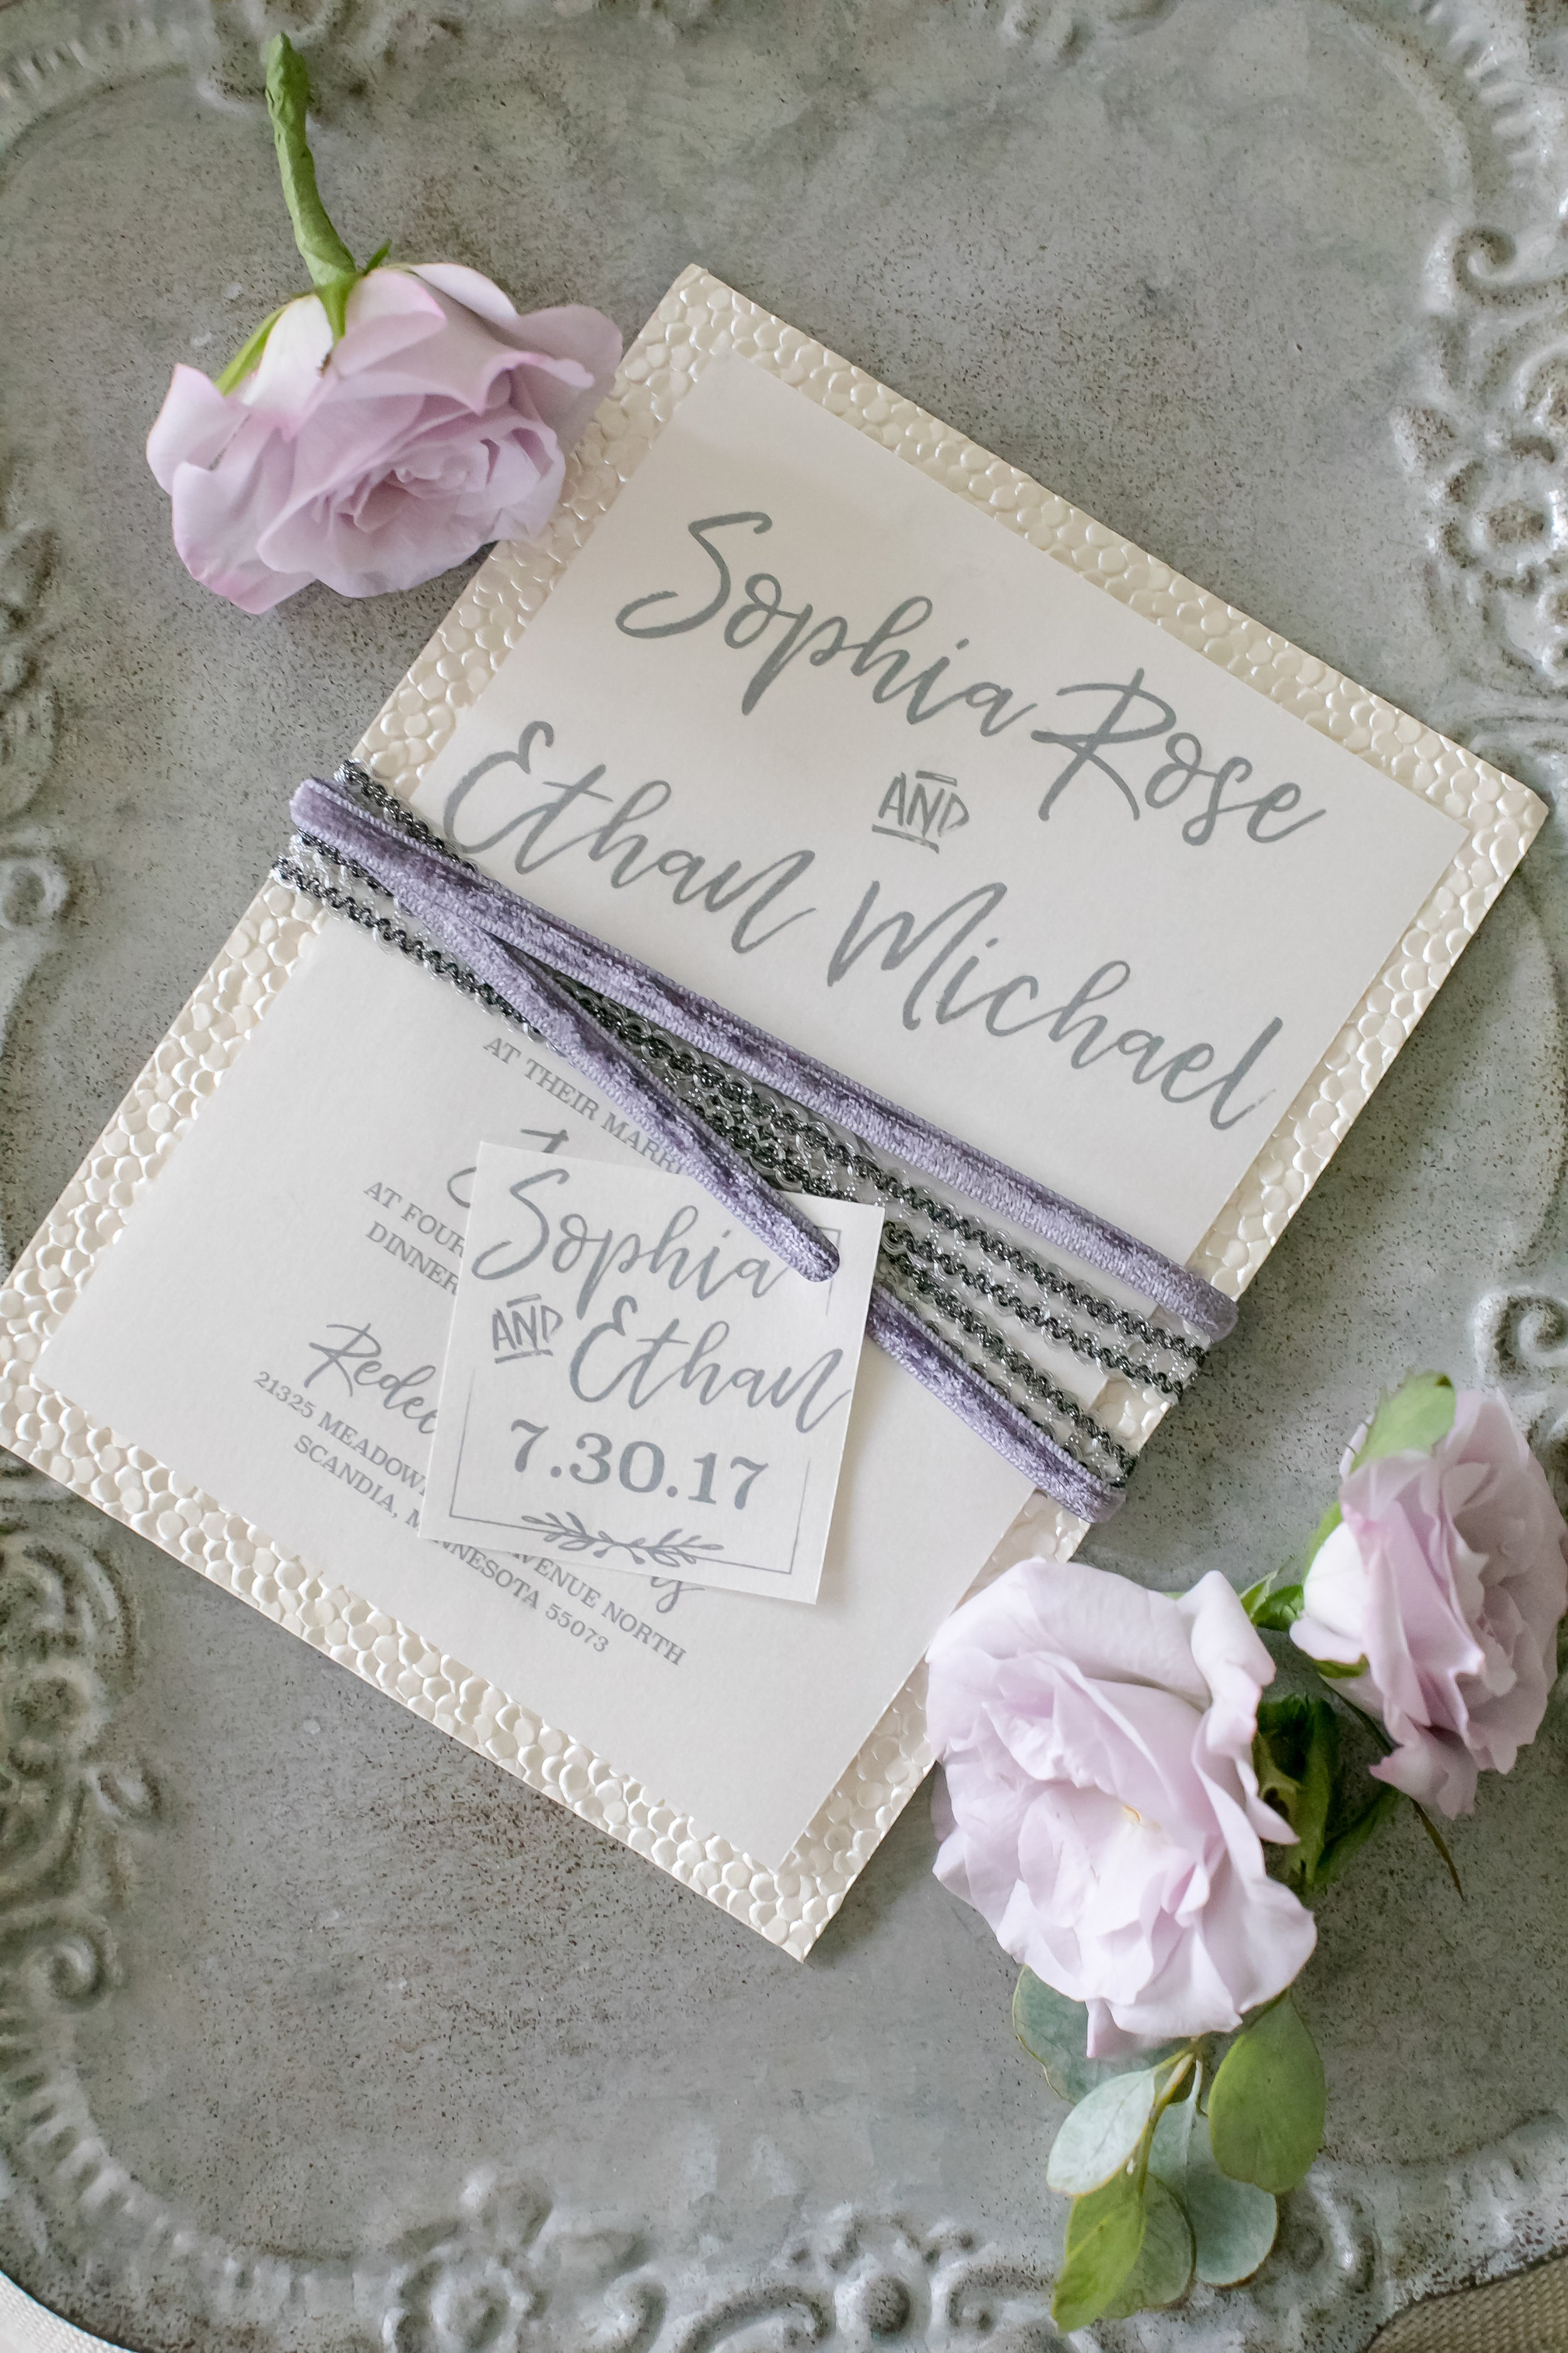 Purple and grey themed wedding invite with cursive writing